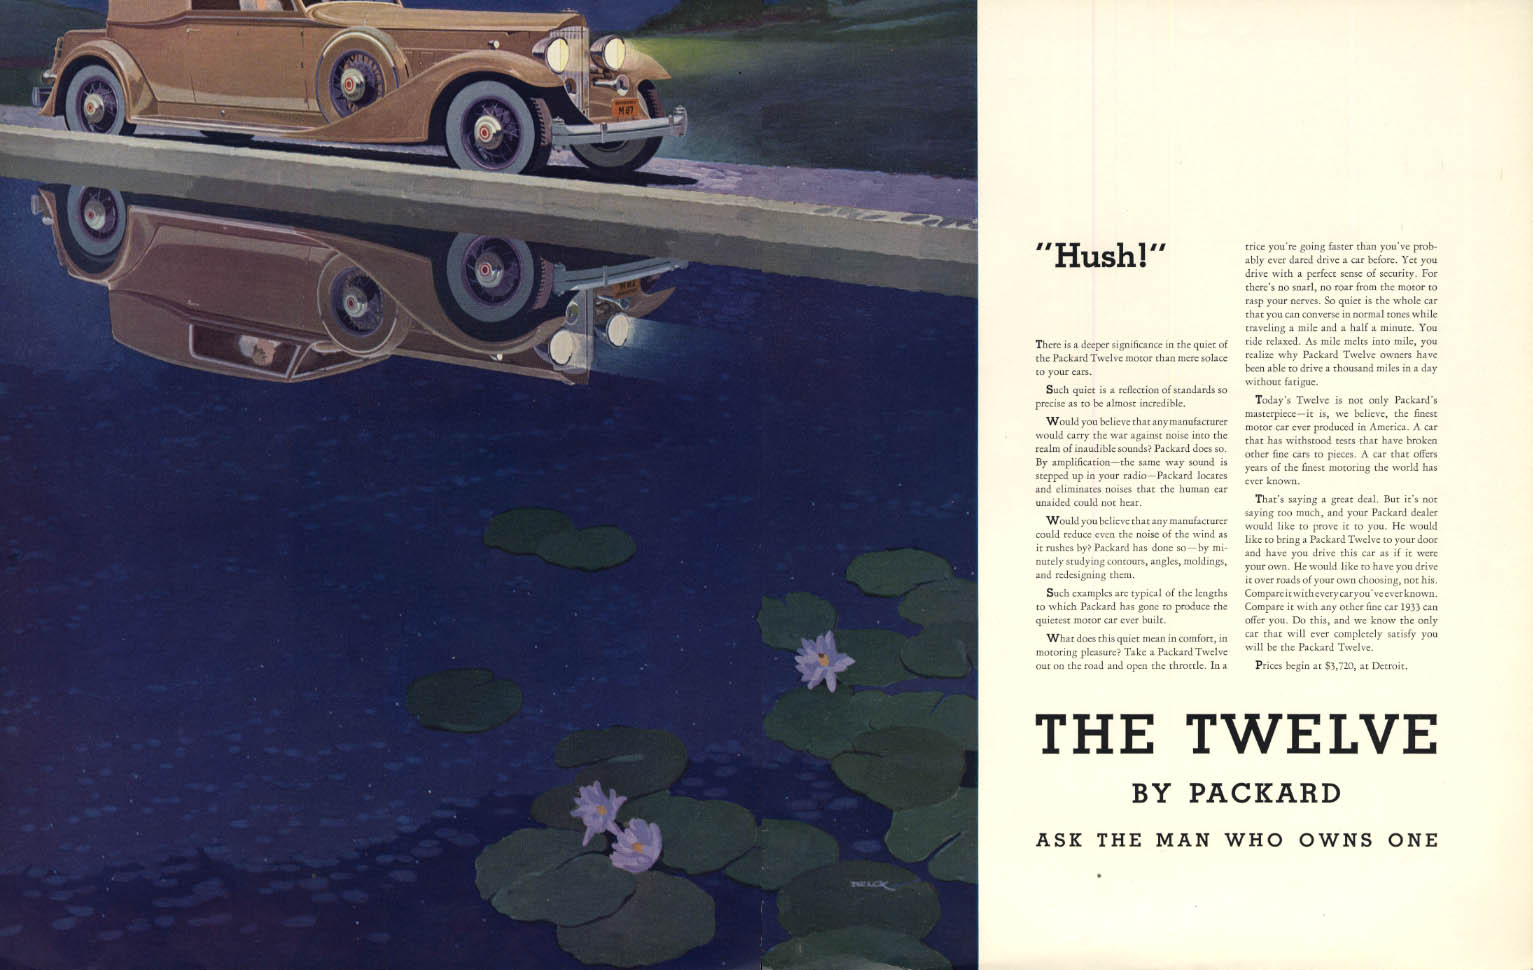 Hush! The Packard Twelve Cabriolet Coupe ad 1933 F Peter Helck art